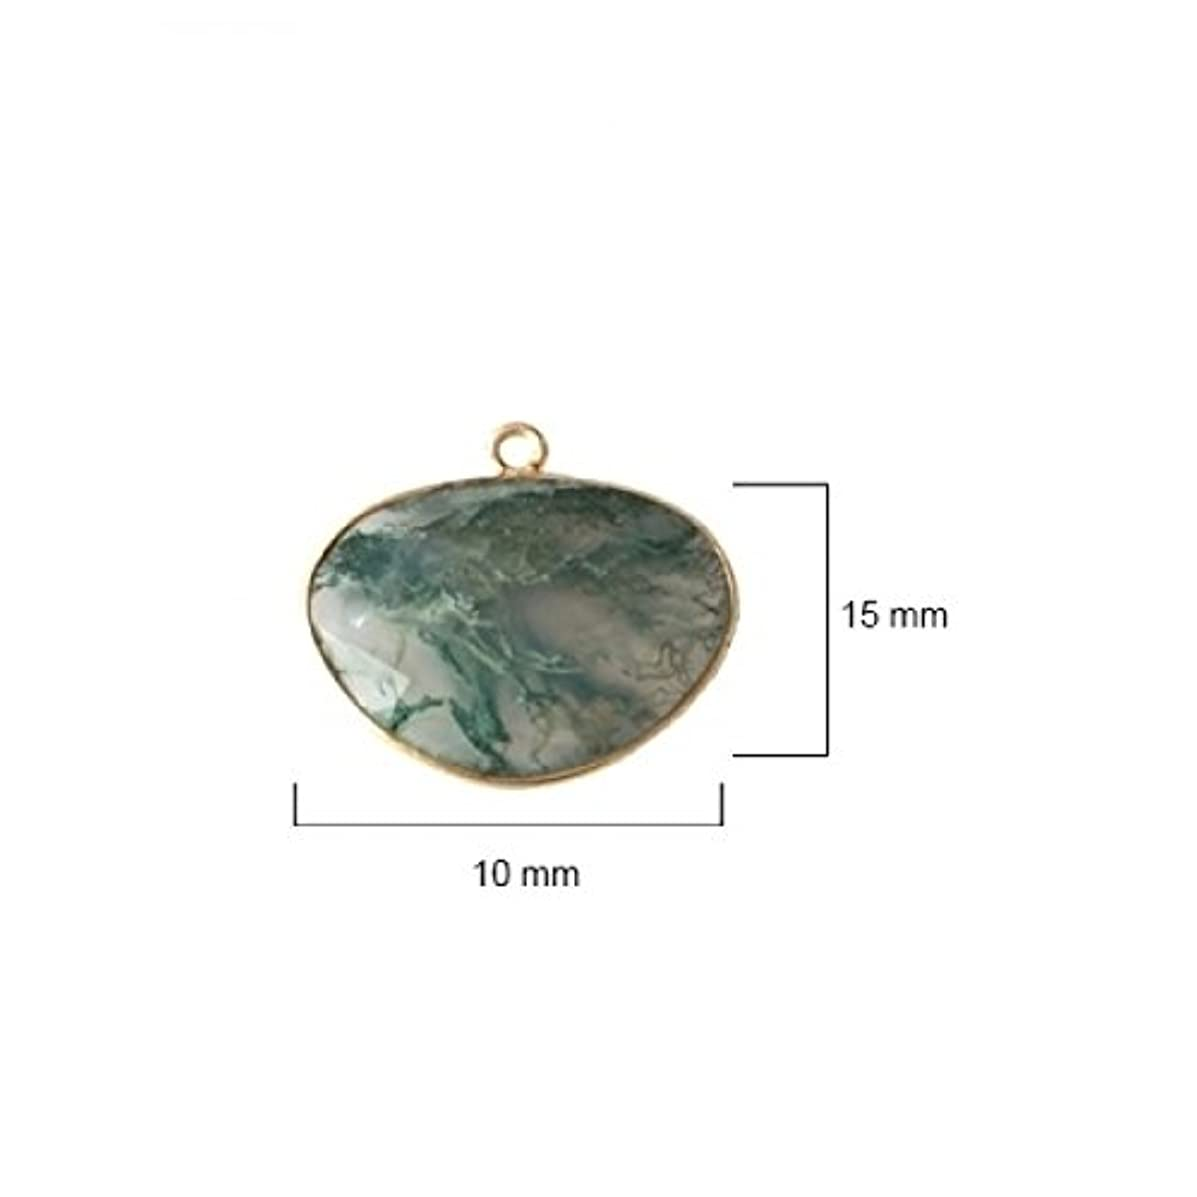 2 Pcs Natural Moss Agate Oval Beads 10X15mm 24K Gold Vermeil by BESTINBEADS, Natural Moss Agate Oval Pendant Bezel Gemstone Connectors Over 925 Sterling Silver Bezel Jewelry Making Supplies